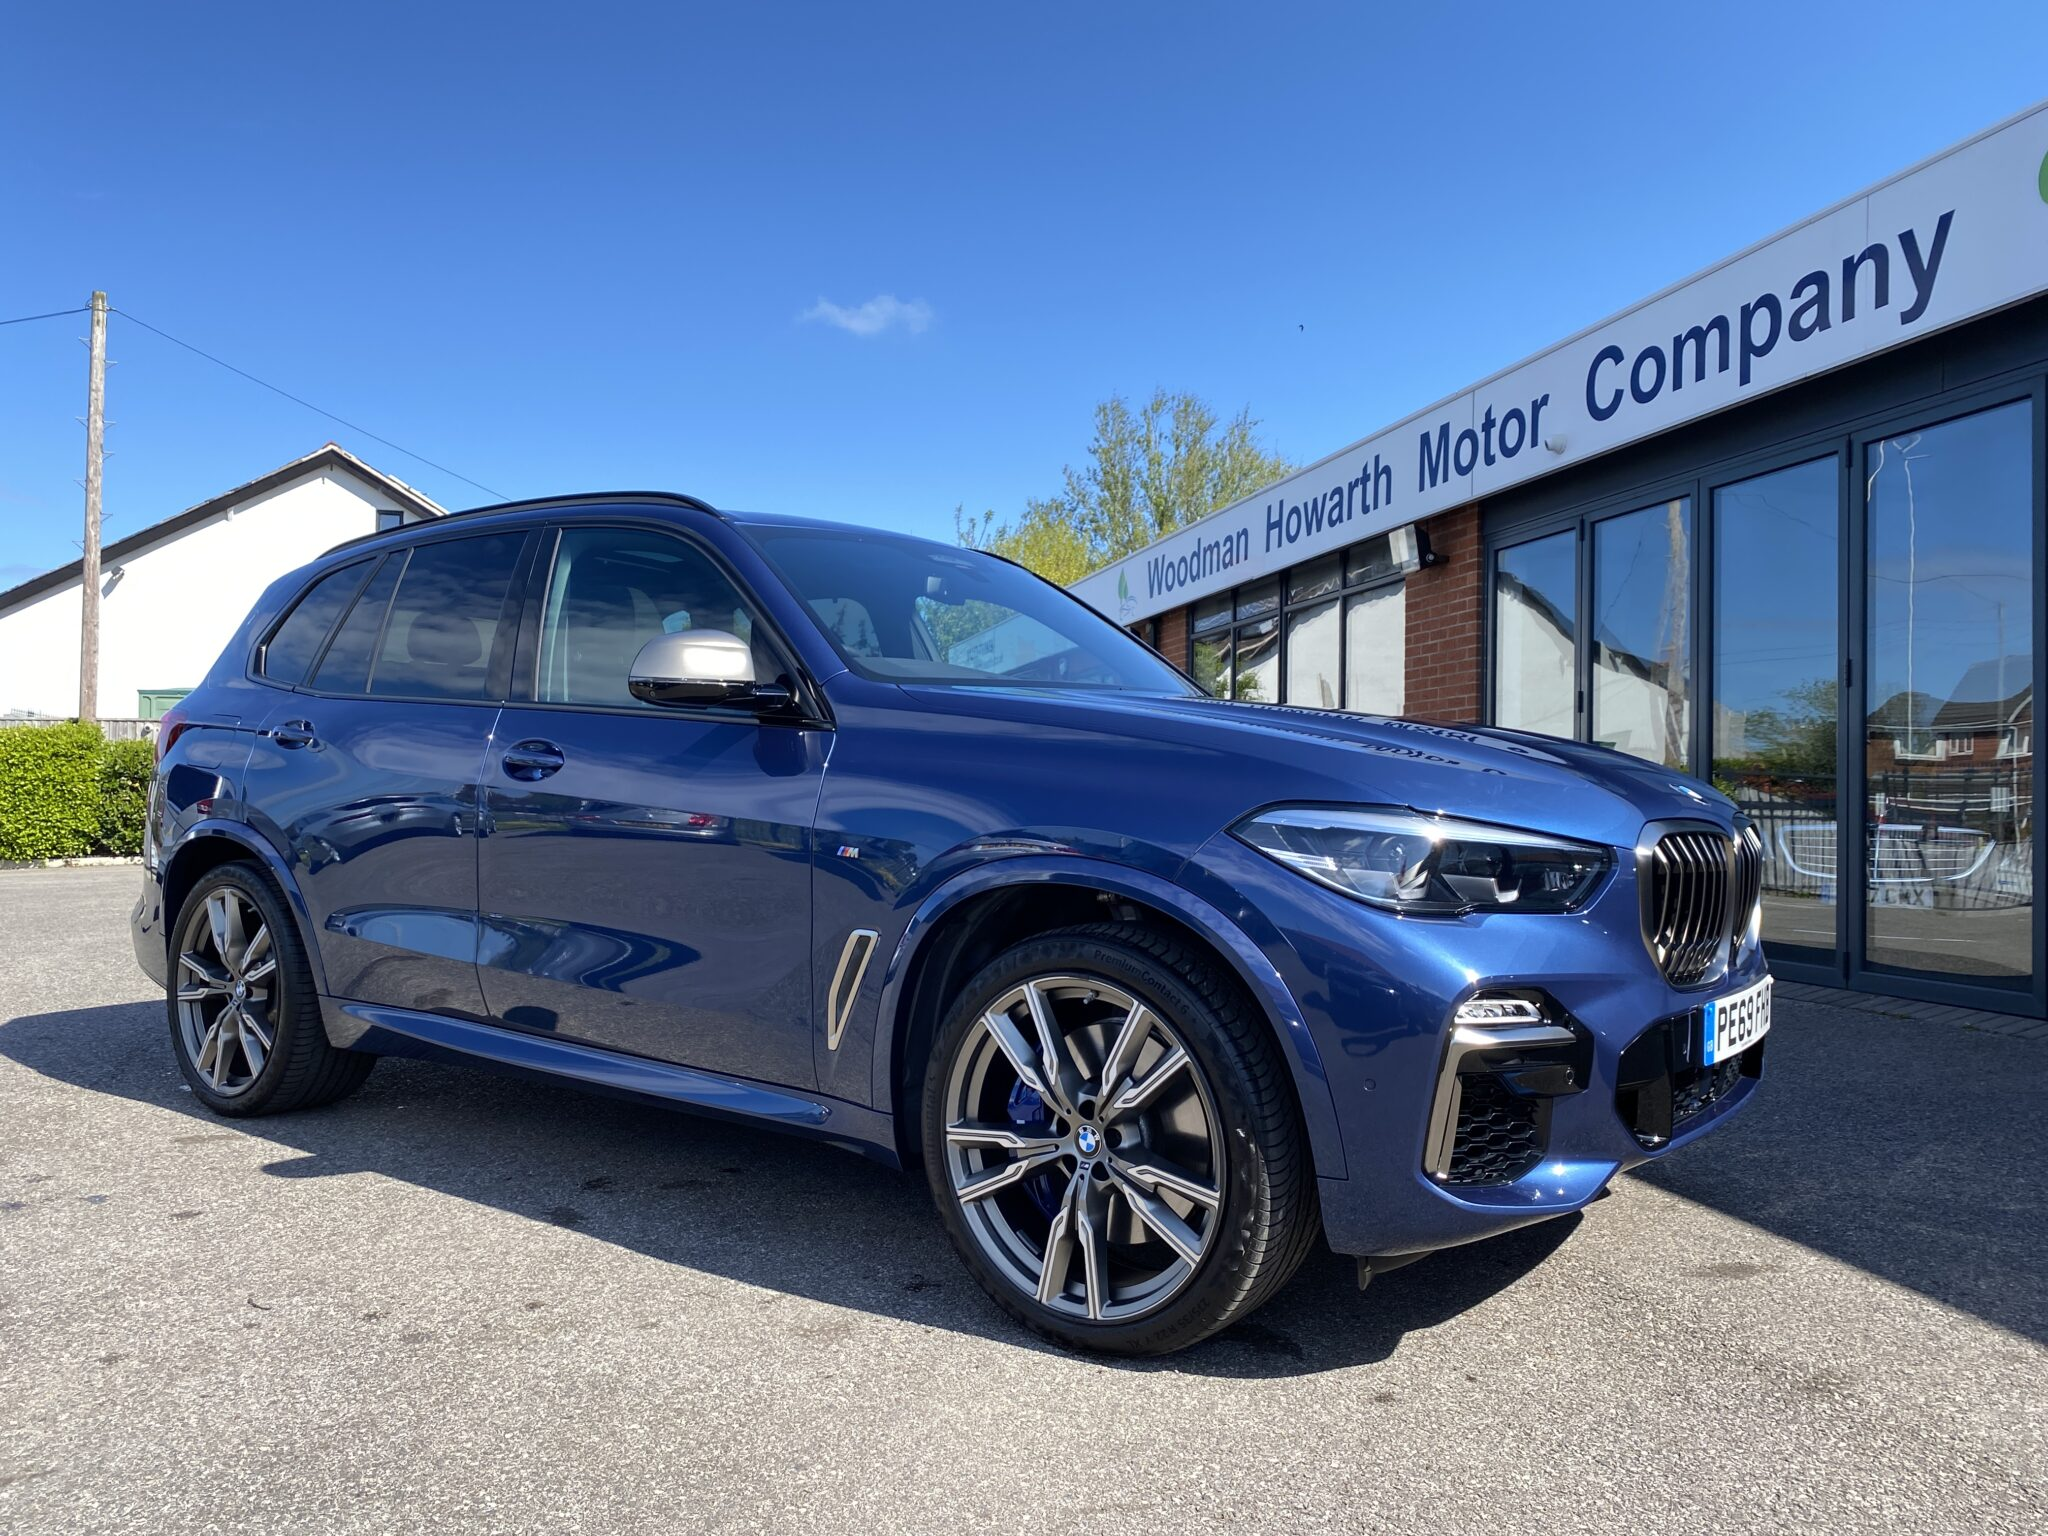 2019 69 BMW X5 M50D AUTO Huge Specification £85K New Skylounge Technology Pack Driver Assist Pro